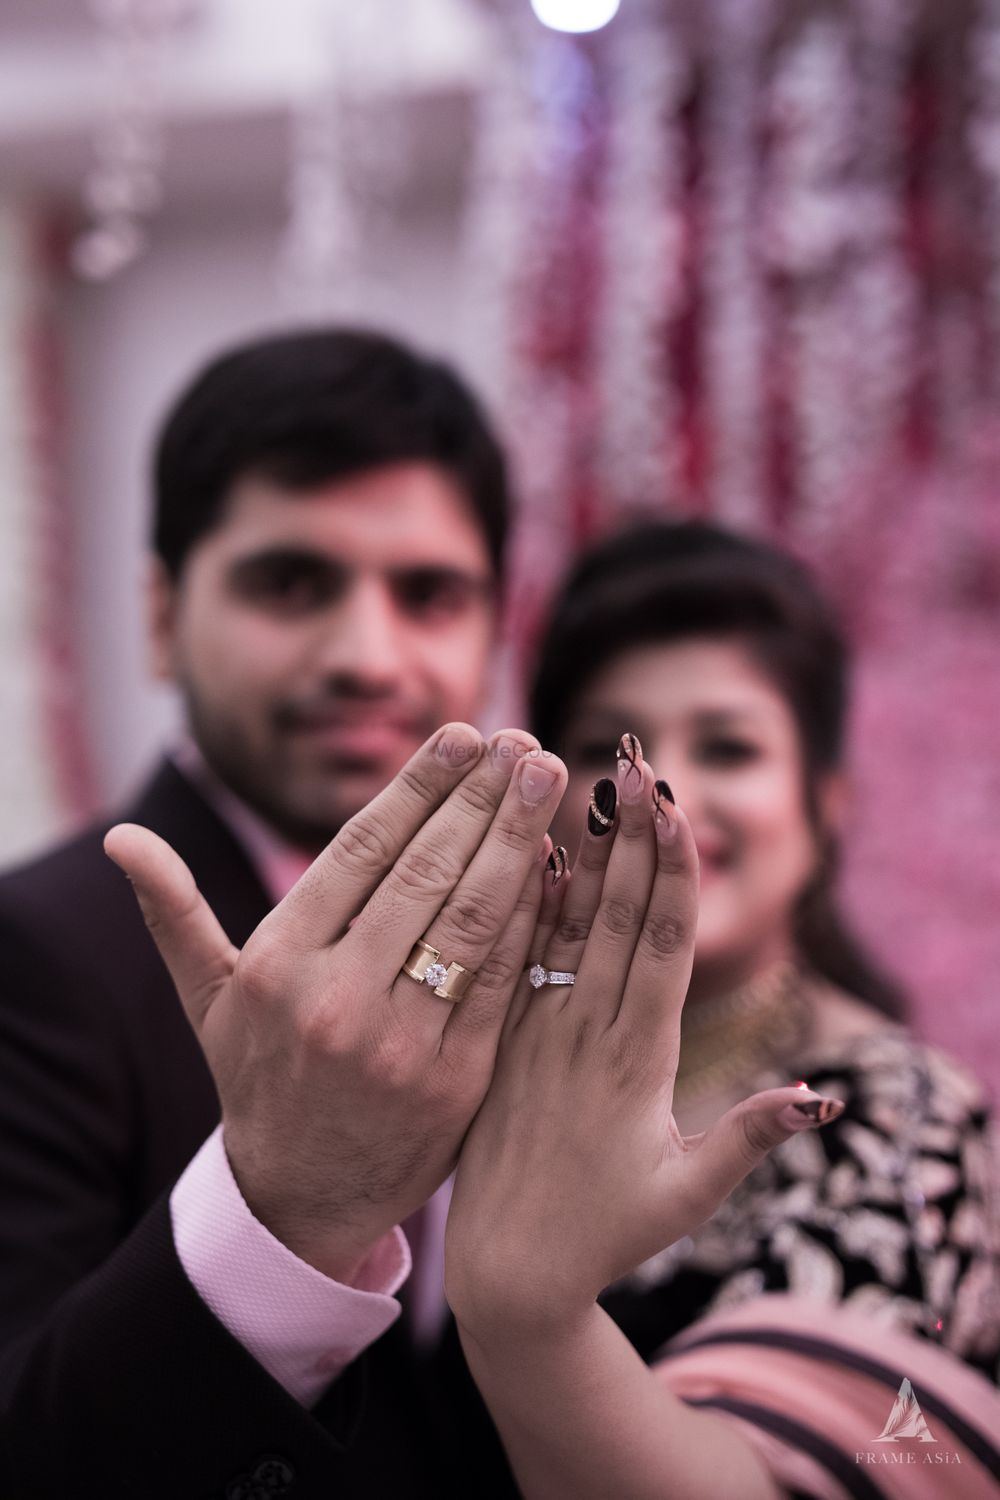 Photo From Aakash + Swati - By Frame Asia